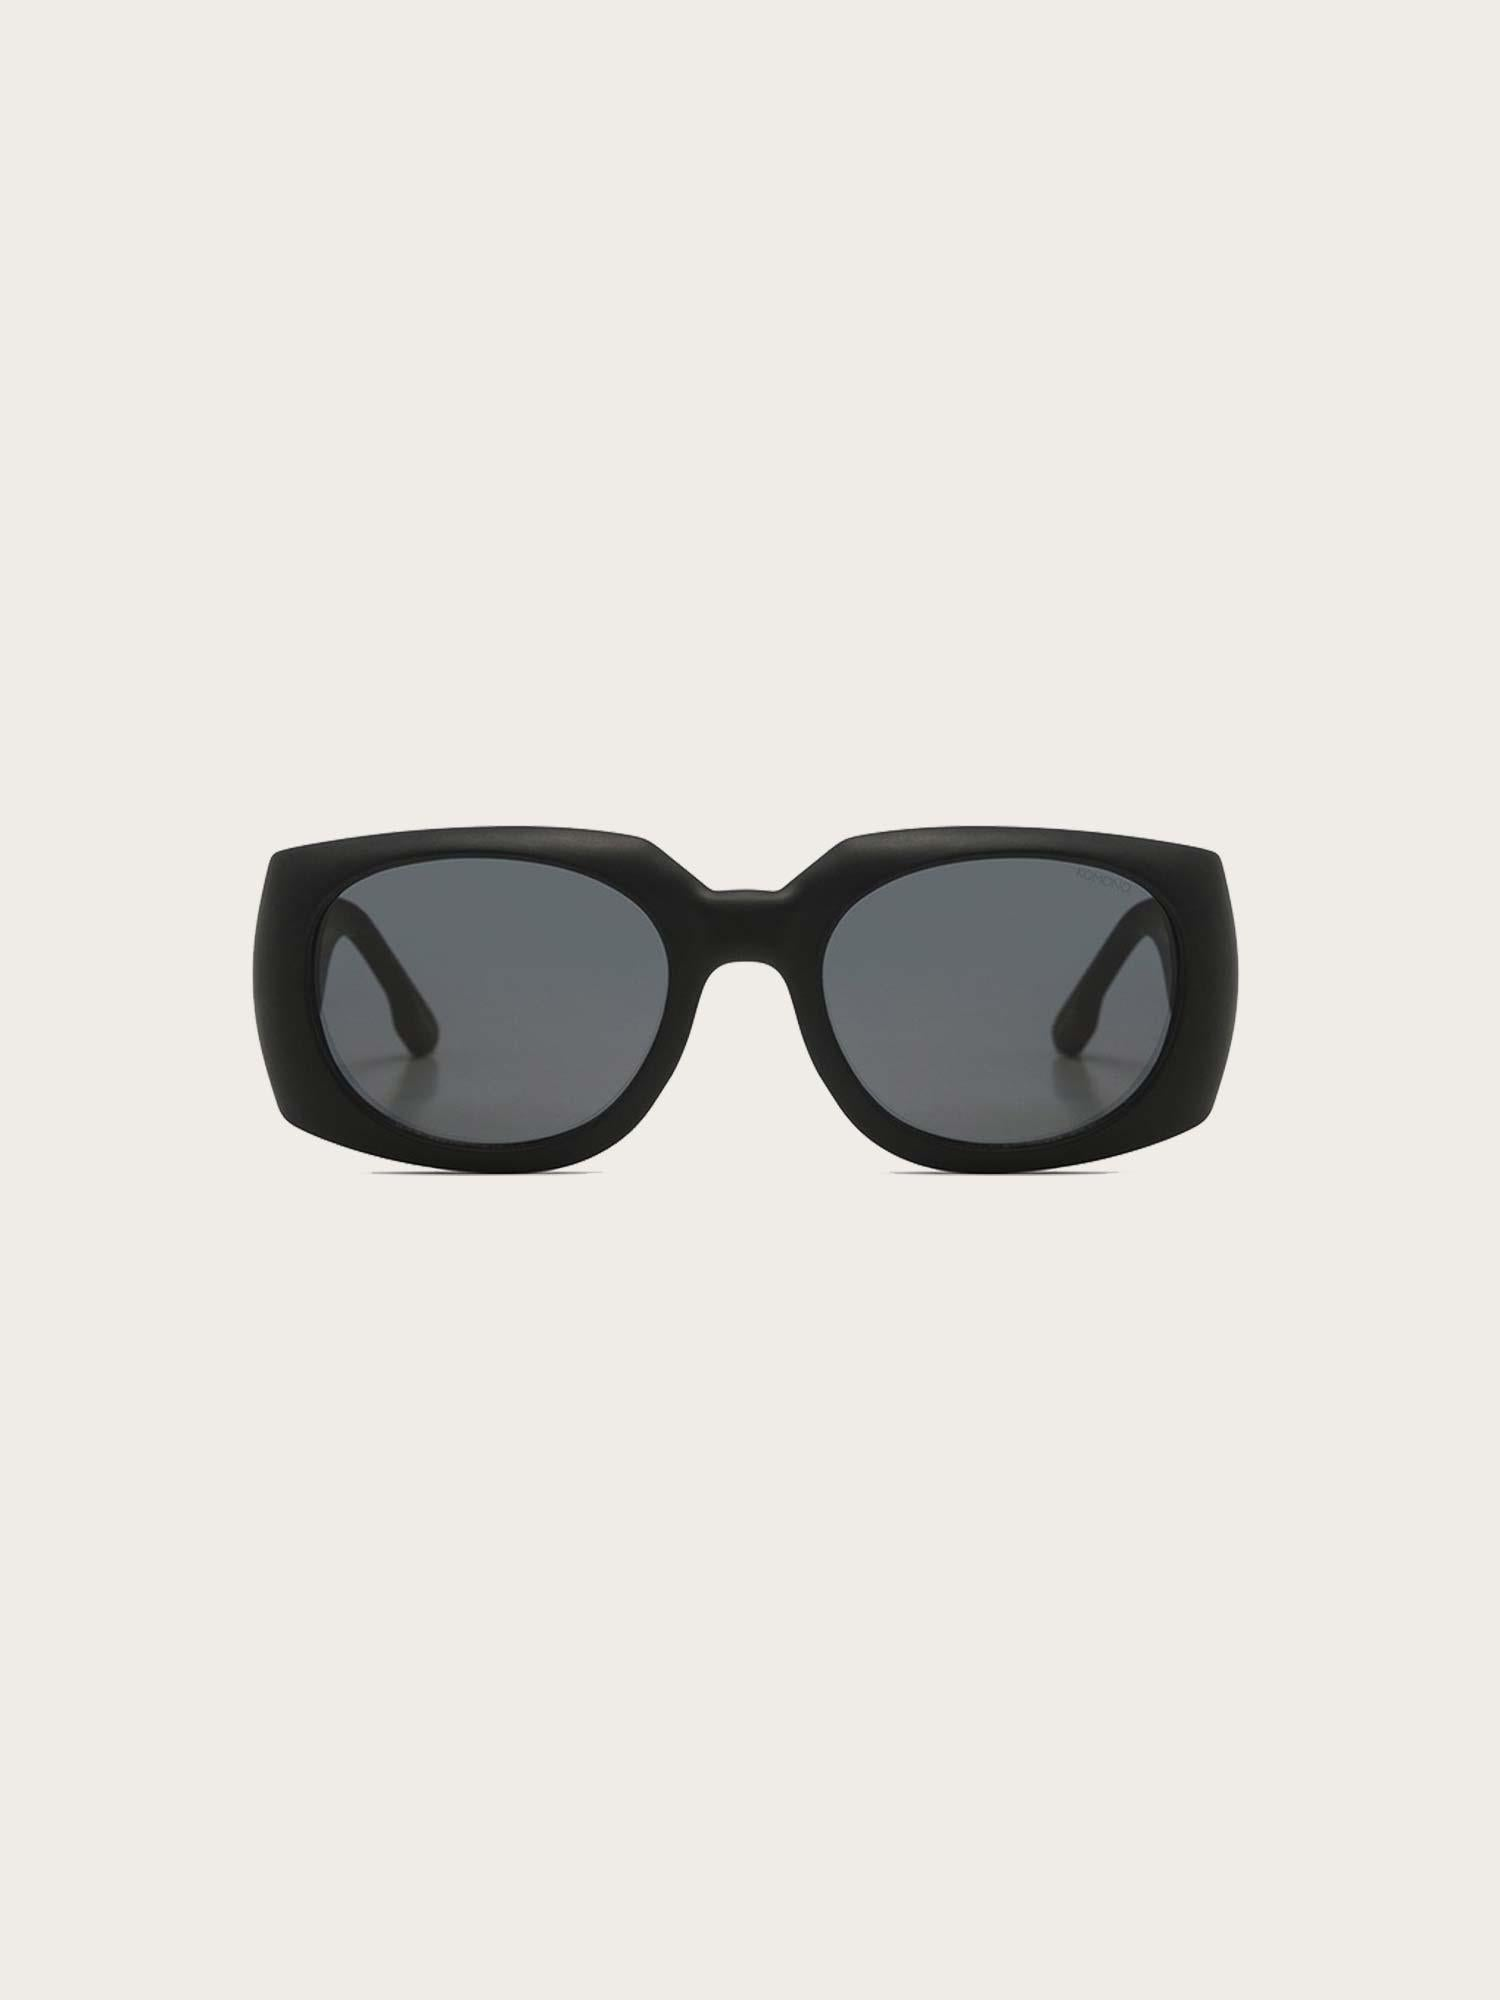 Pj Sunglasses Carbon